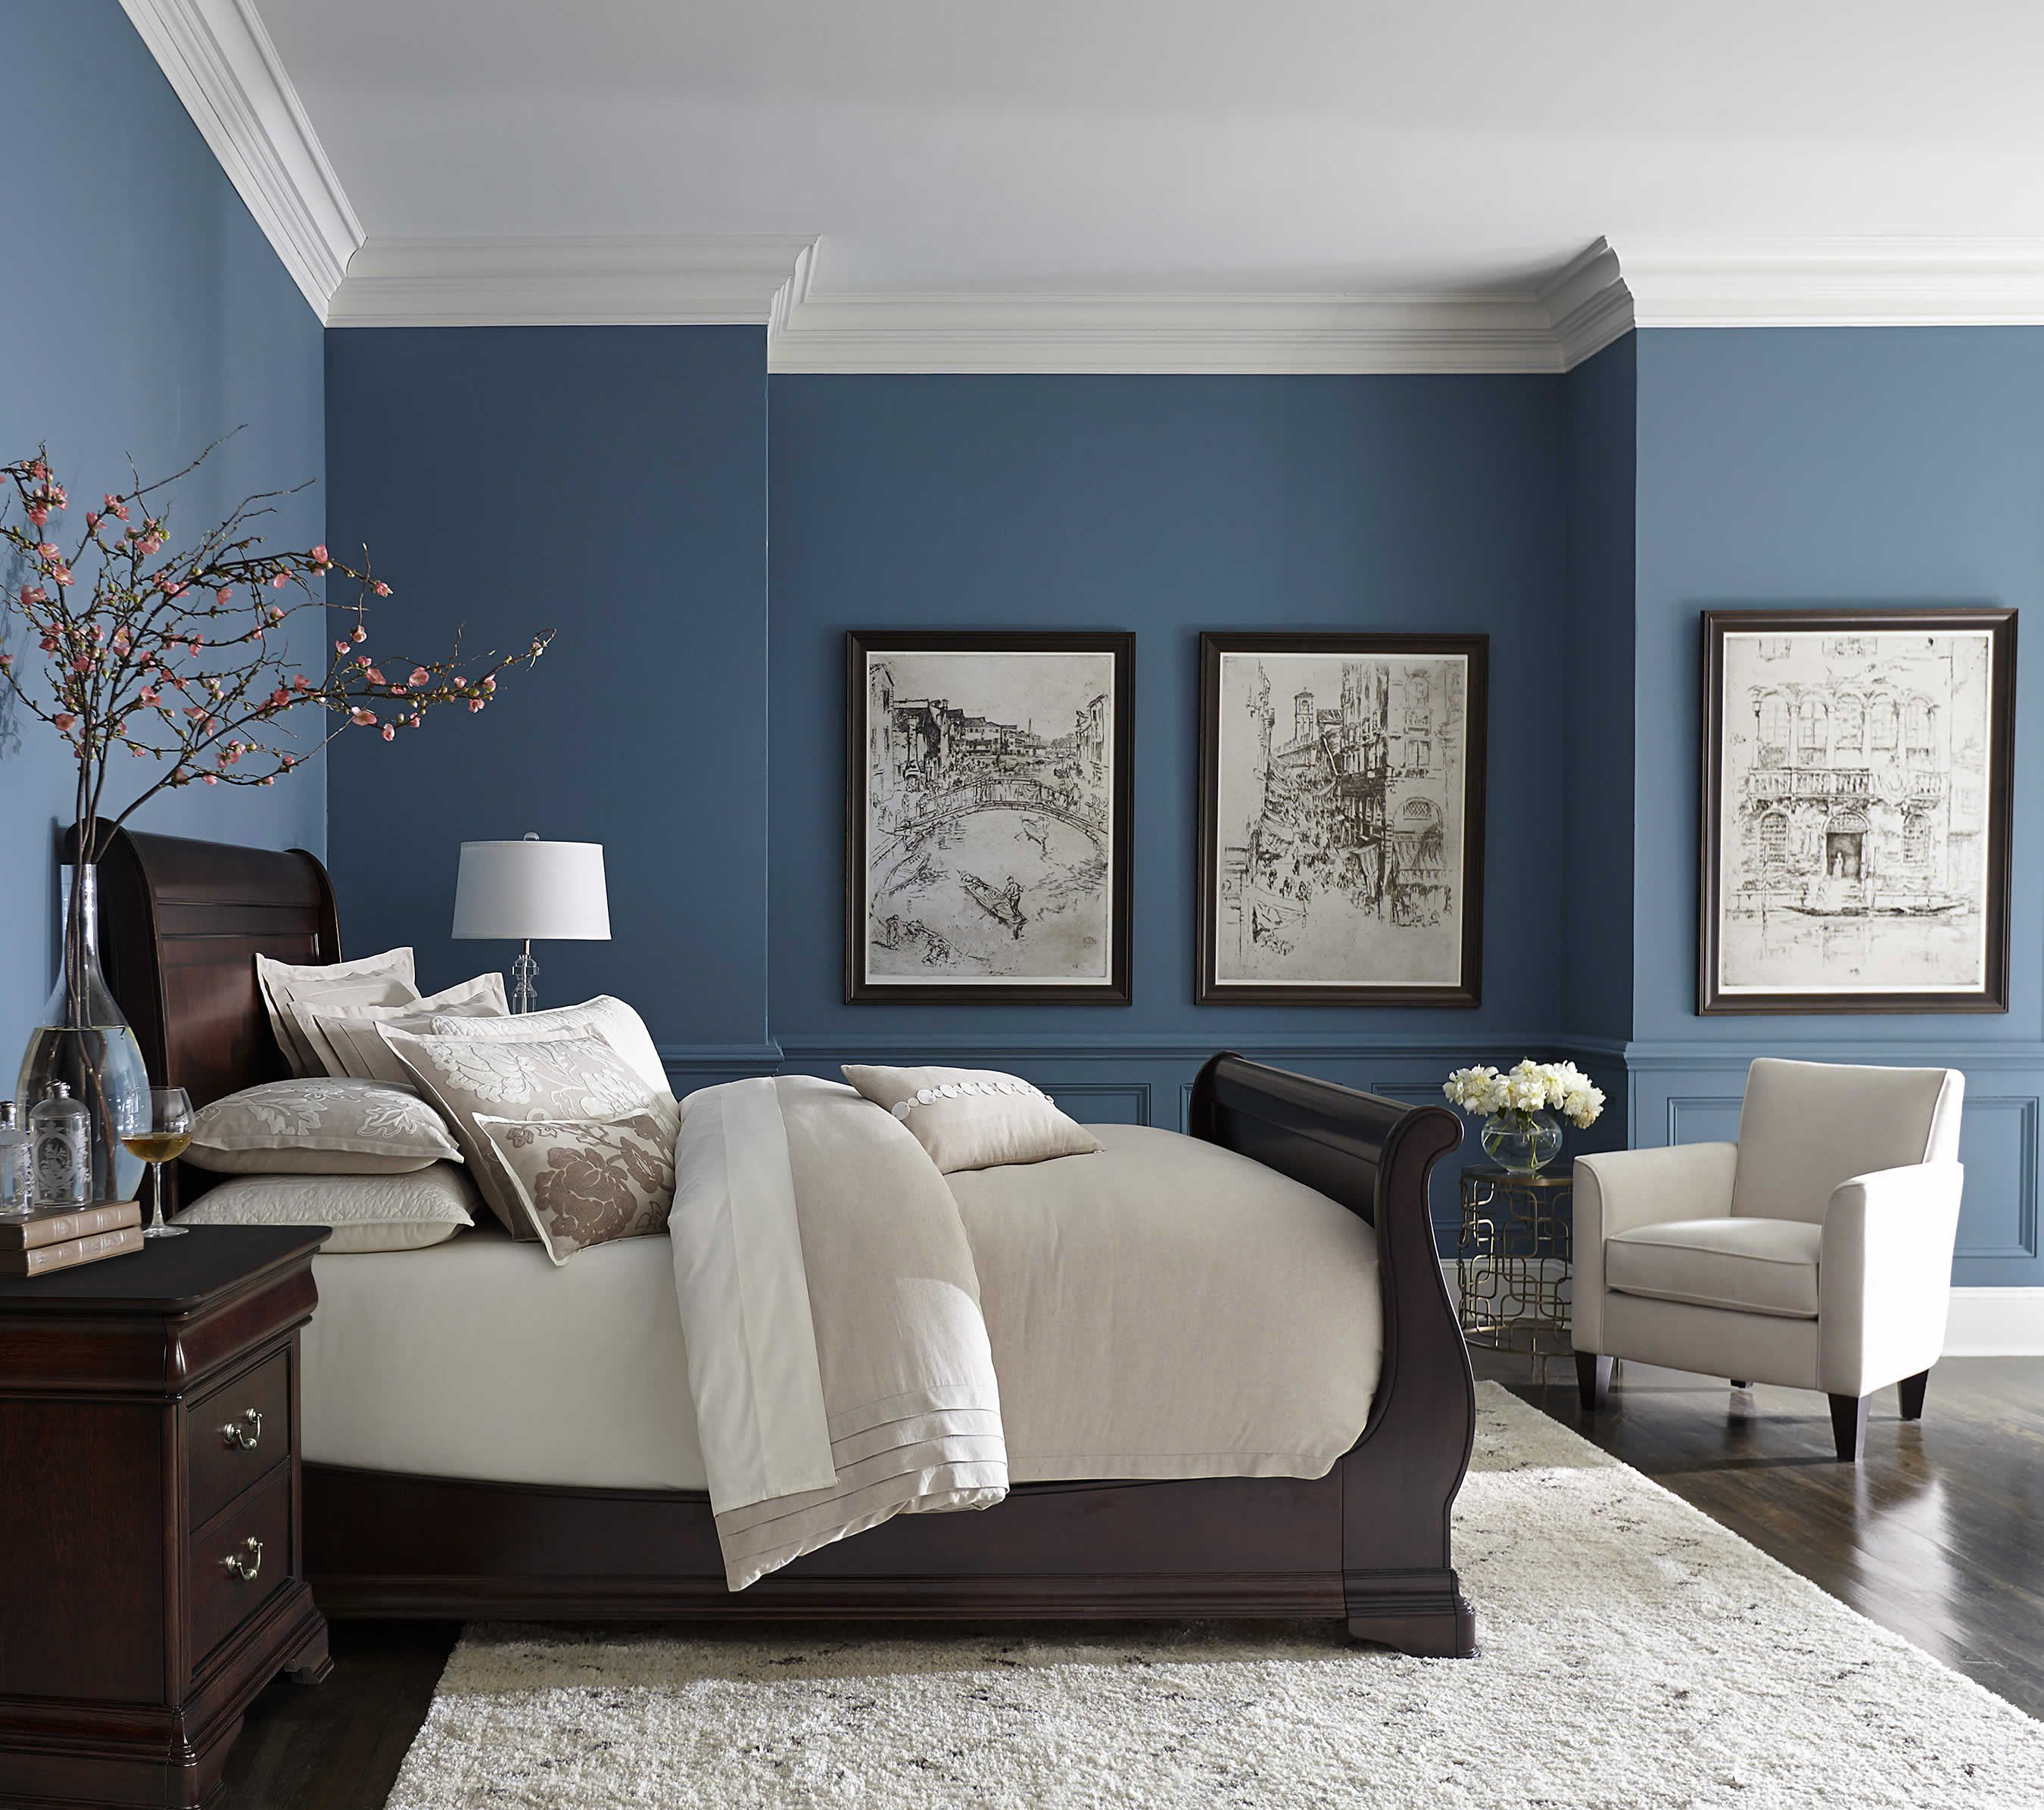 Peaceful Bedroom Colors And Decorating Ideas: 43 Master Bedroom Ideas For Couples Colour Schemes Living